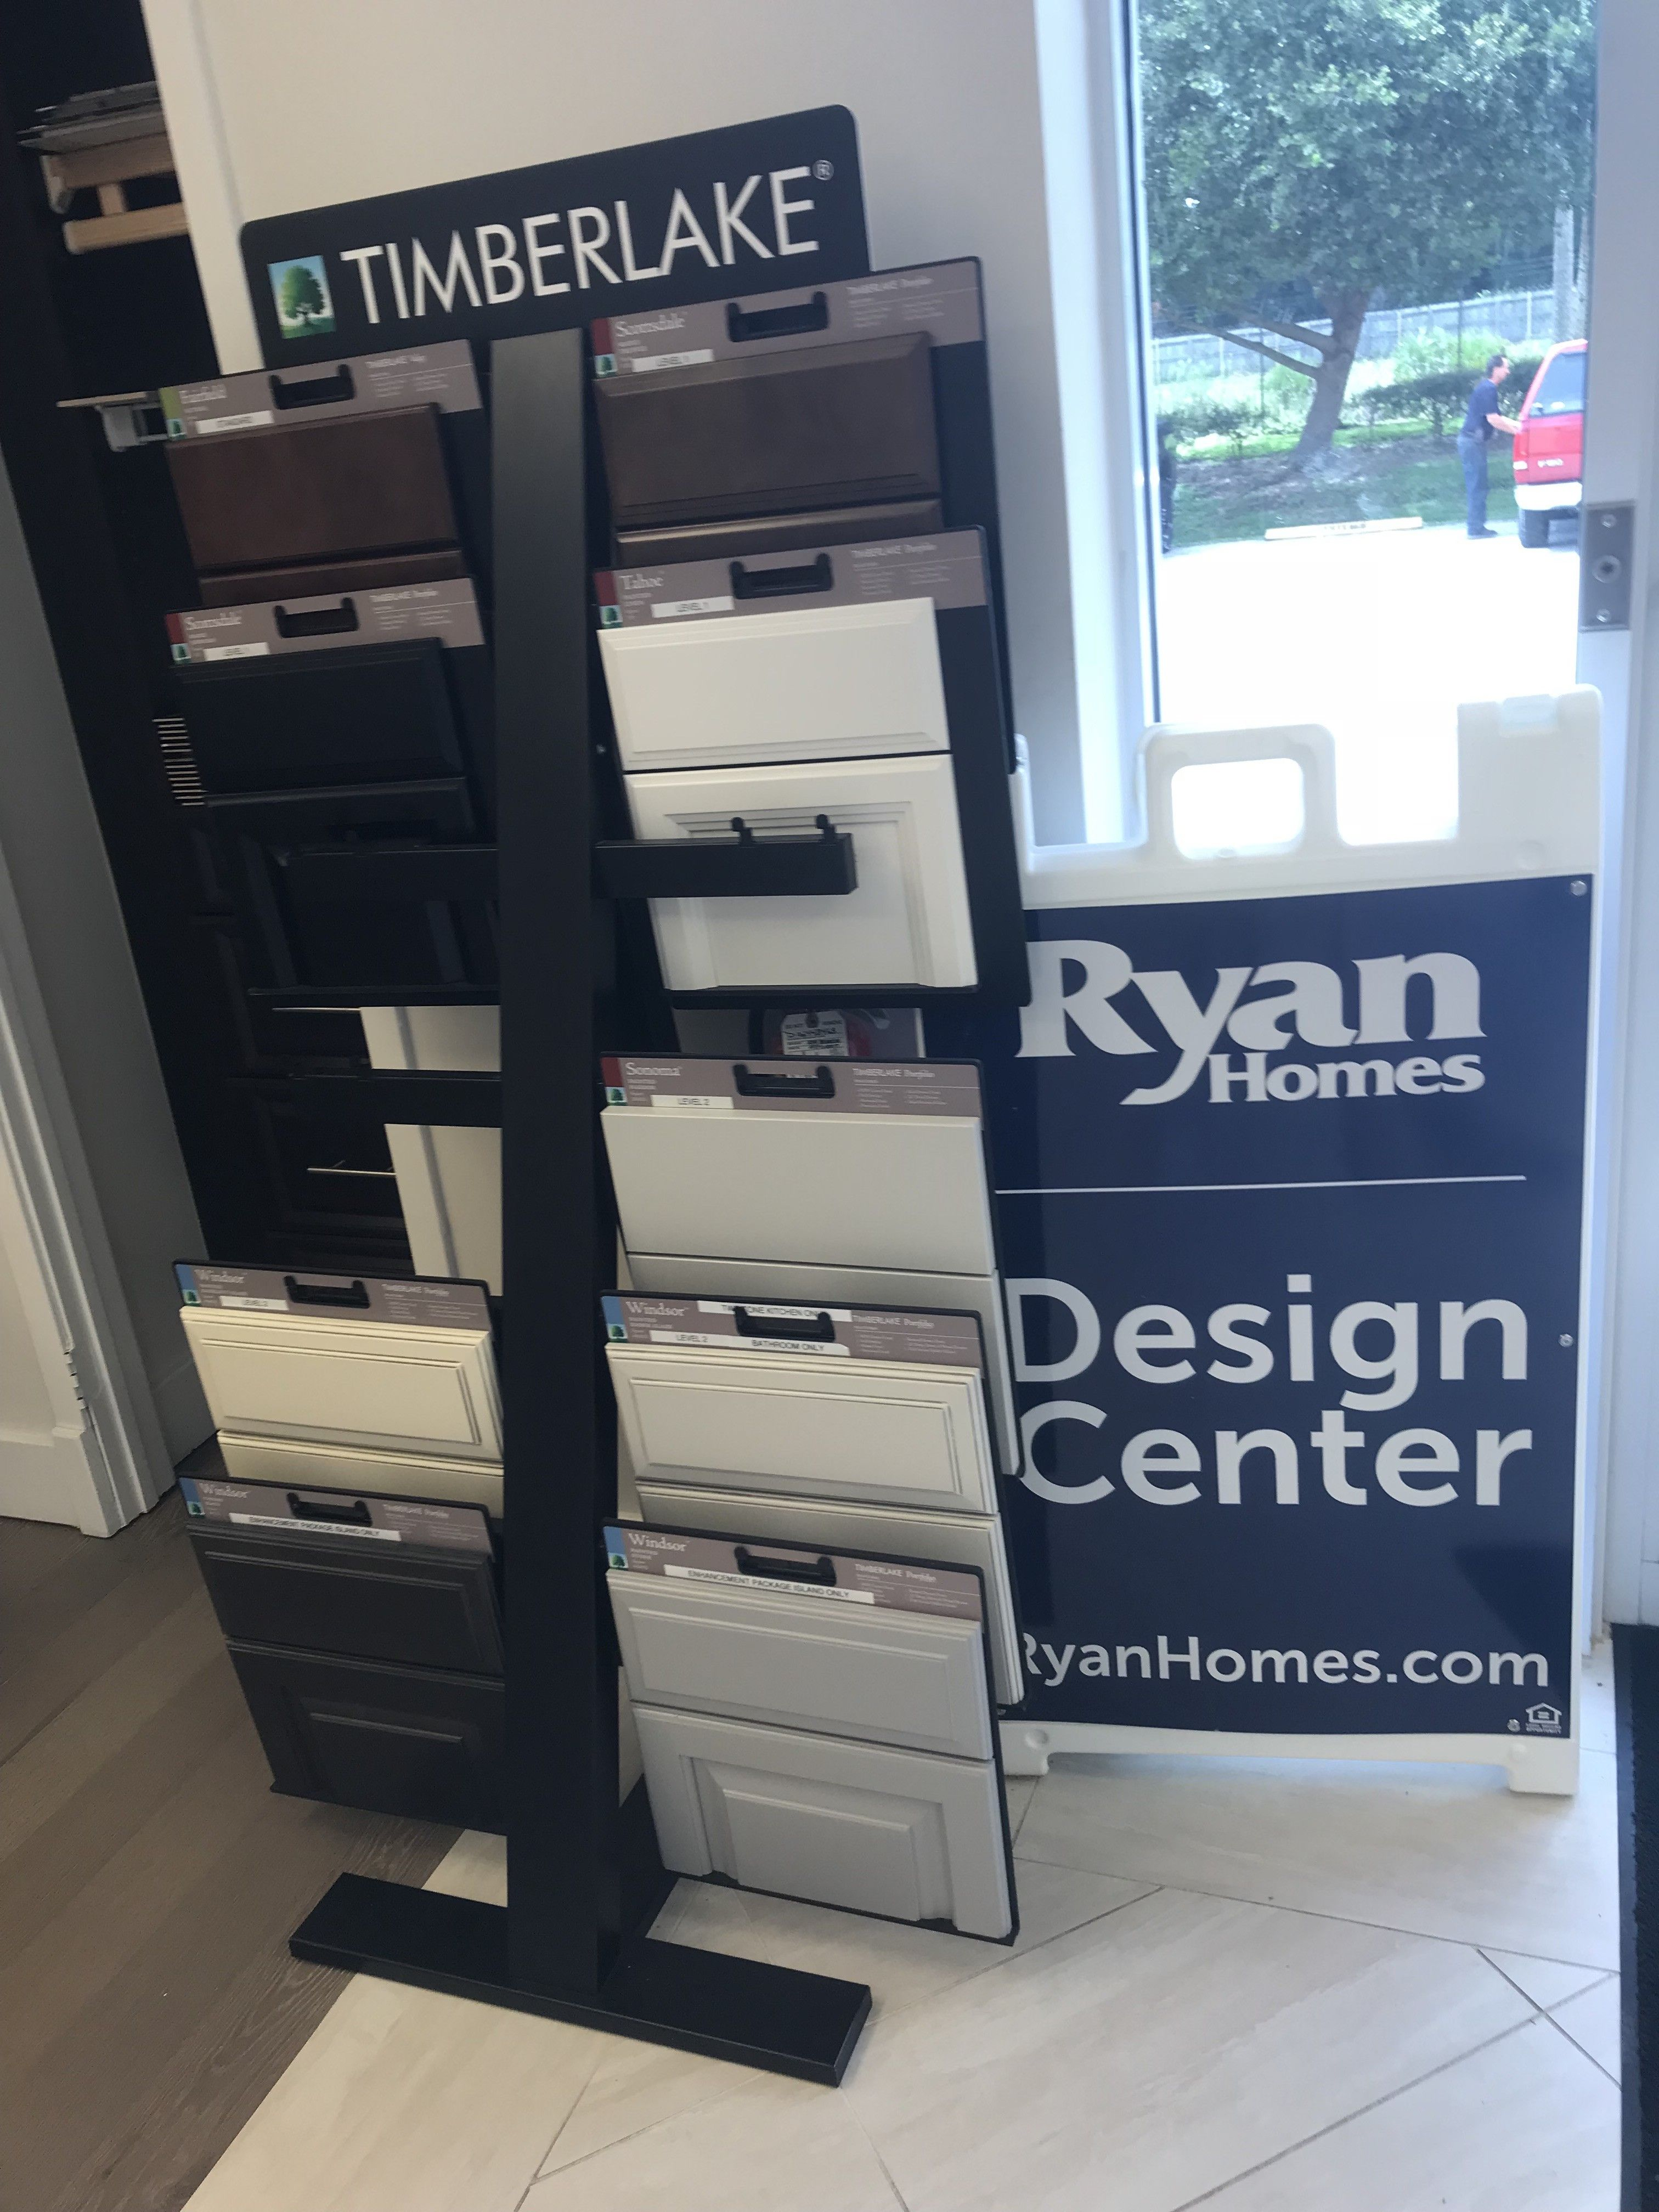 Our Experience At The Ryan Homes Design Center Home Building Tips House Siding Options Ryan Homes